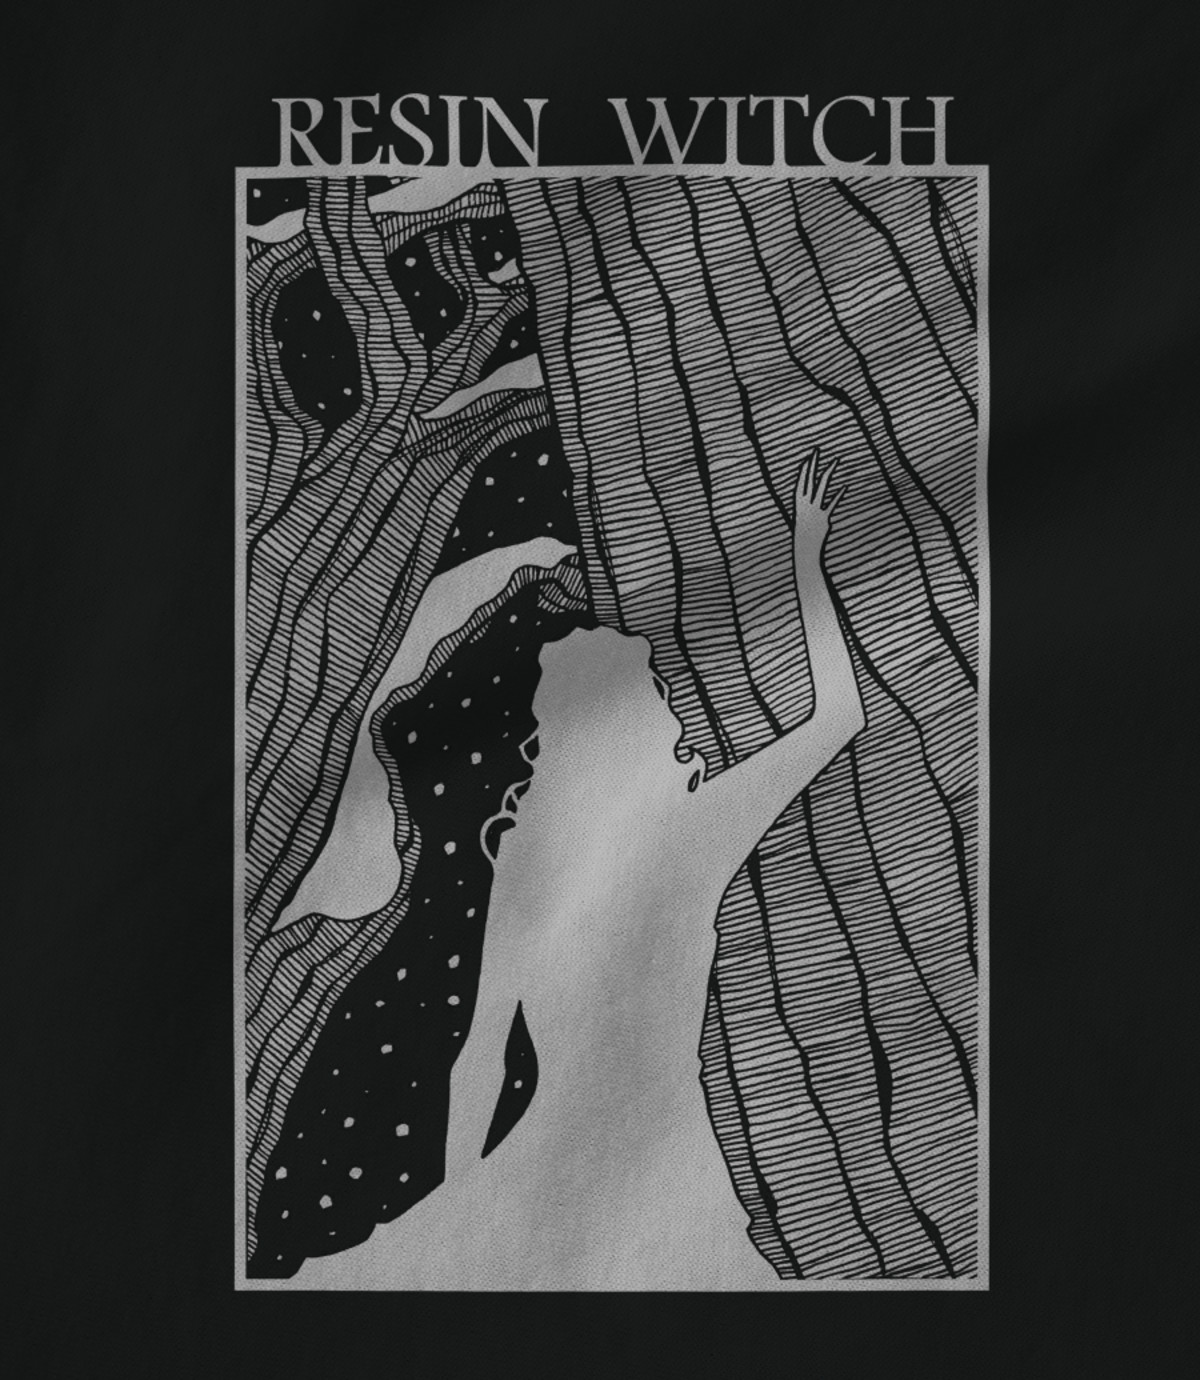 Resin witch black 1507216338